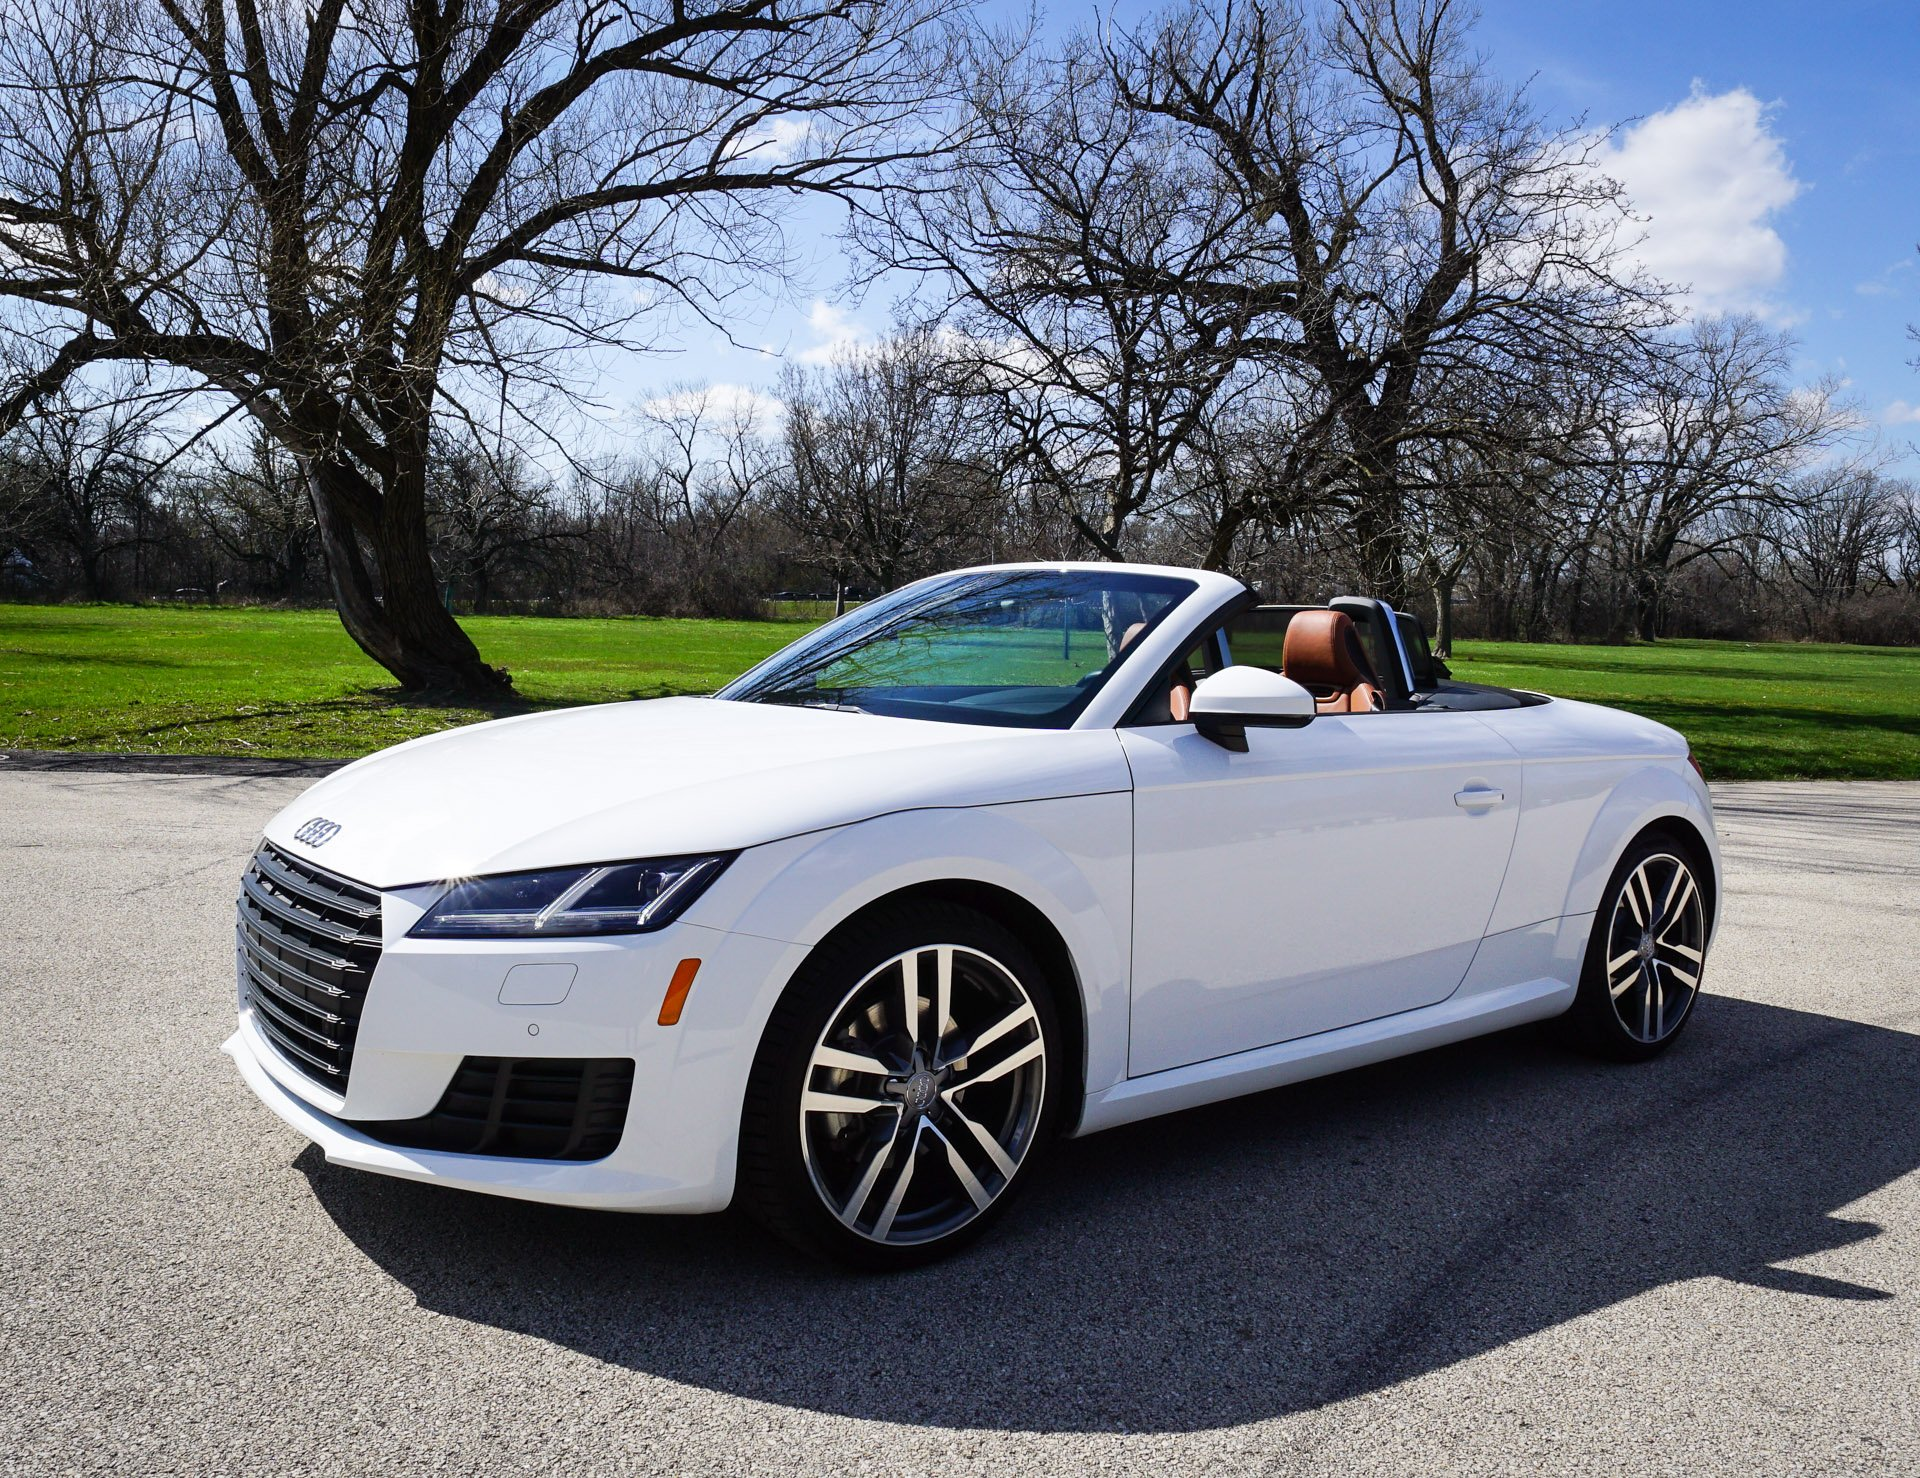 Review 2016 Audi Tt Roadster 2 0t Quattro 95 Octane